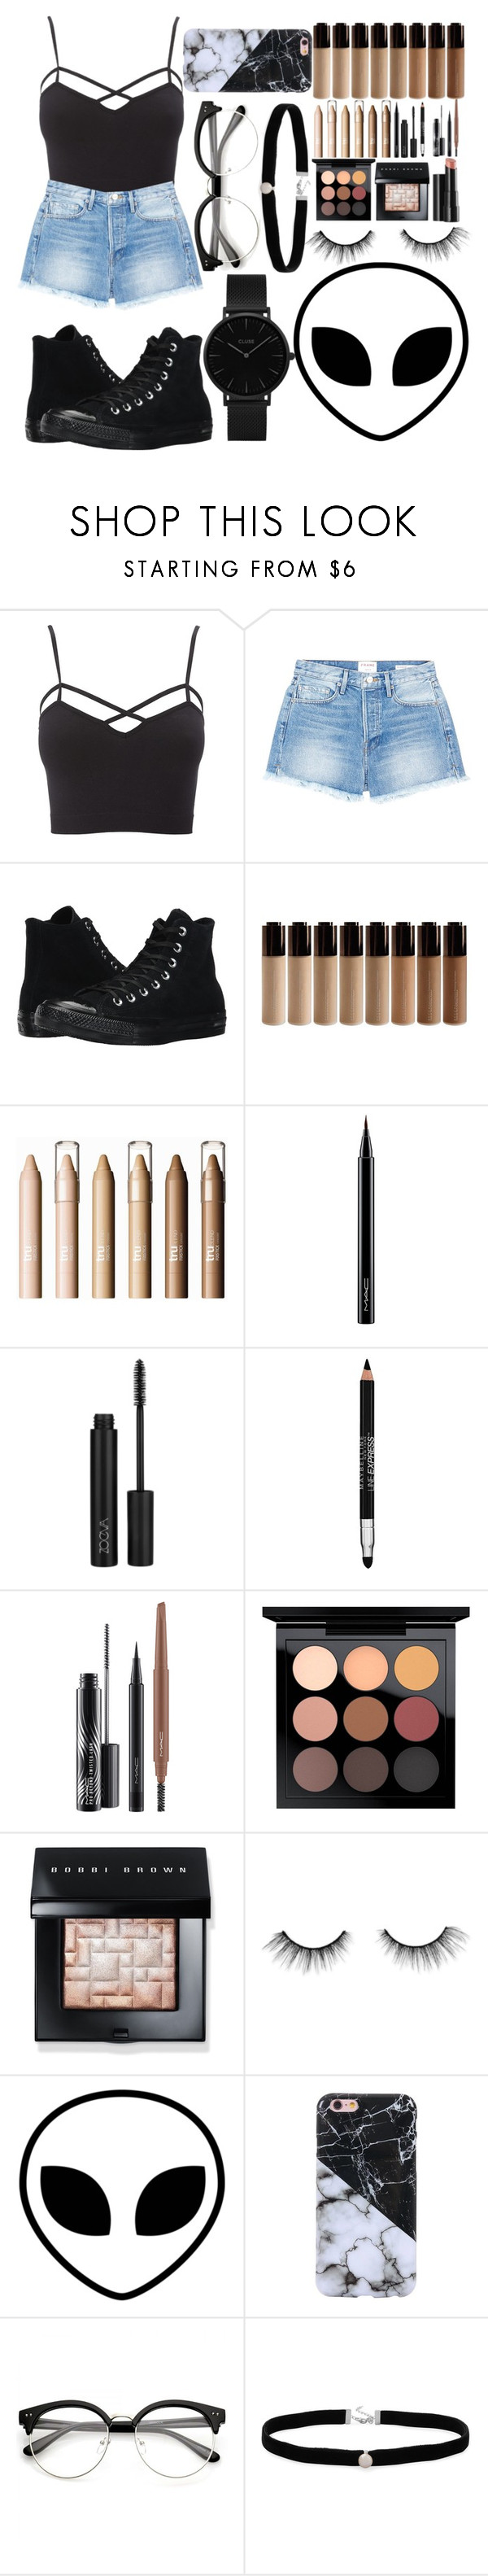 """""""Back From the Edge"""" by diamond139 ❤ liked on Polyvore featuring beauty, Charlotte Russe, Frame, Converse, MAC Cosmetics, Maybelline, Bobbi Brown Cosmetics, Arbonne, tarte and Amanda Rose Collection"""